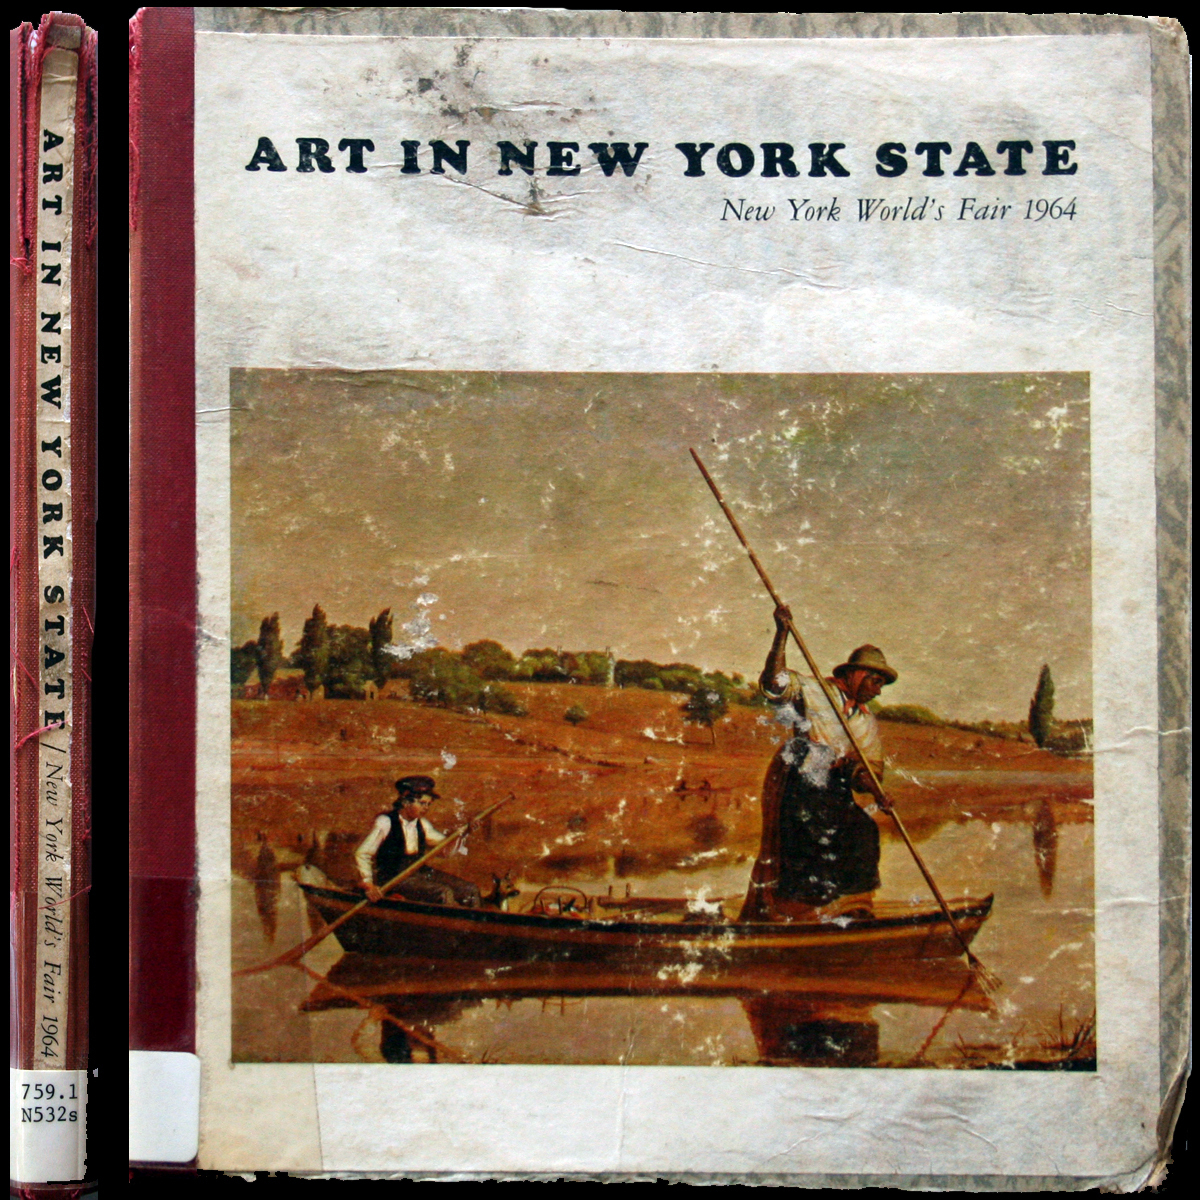 1964 New York World's Fair Art Hudson River Artists